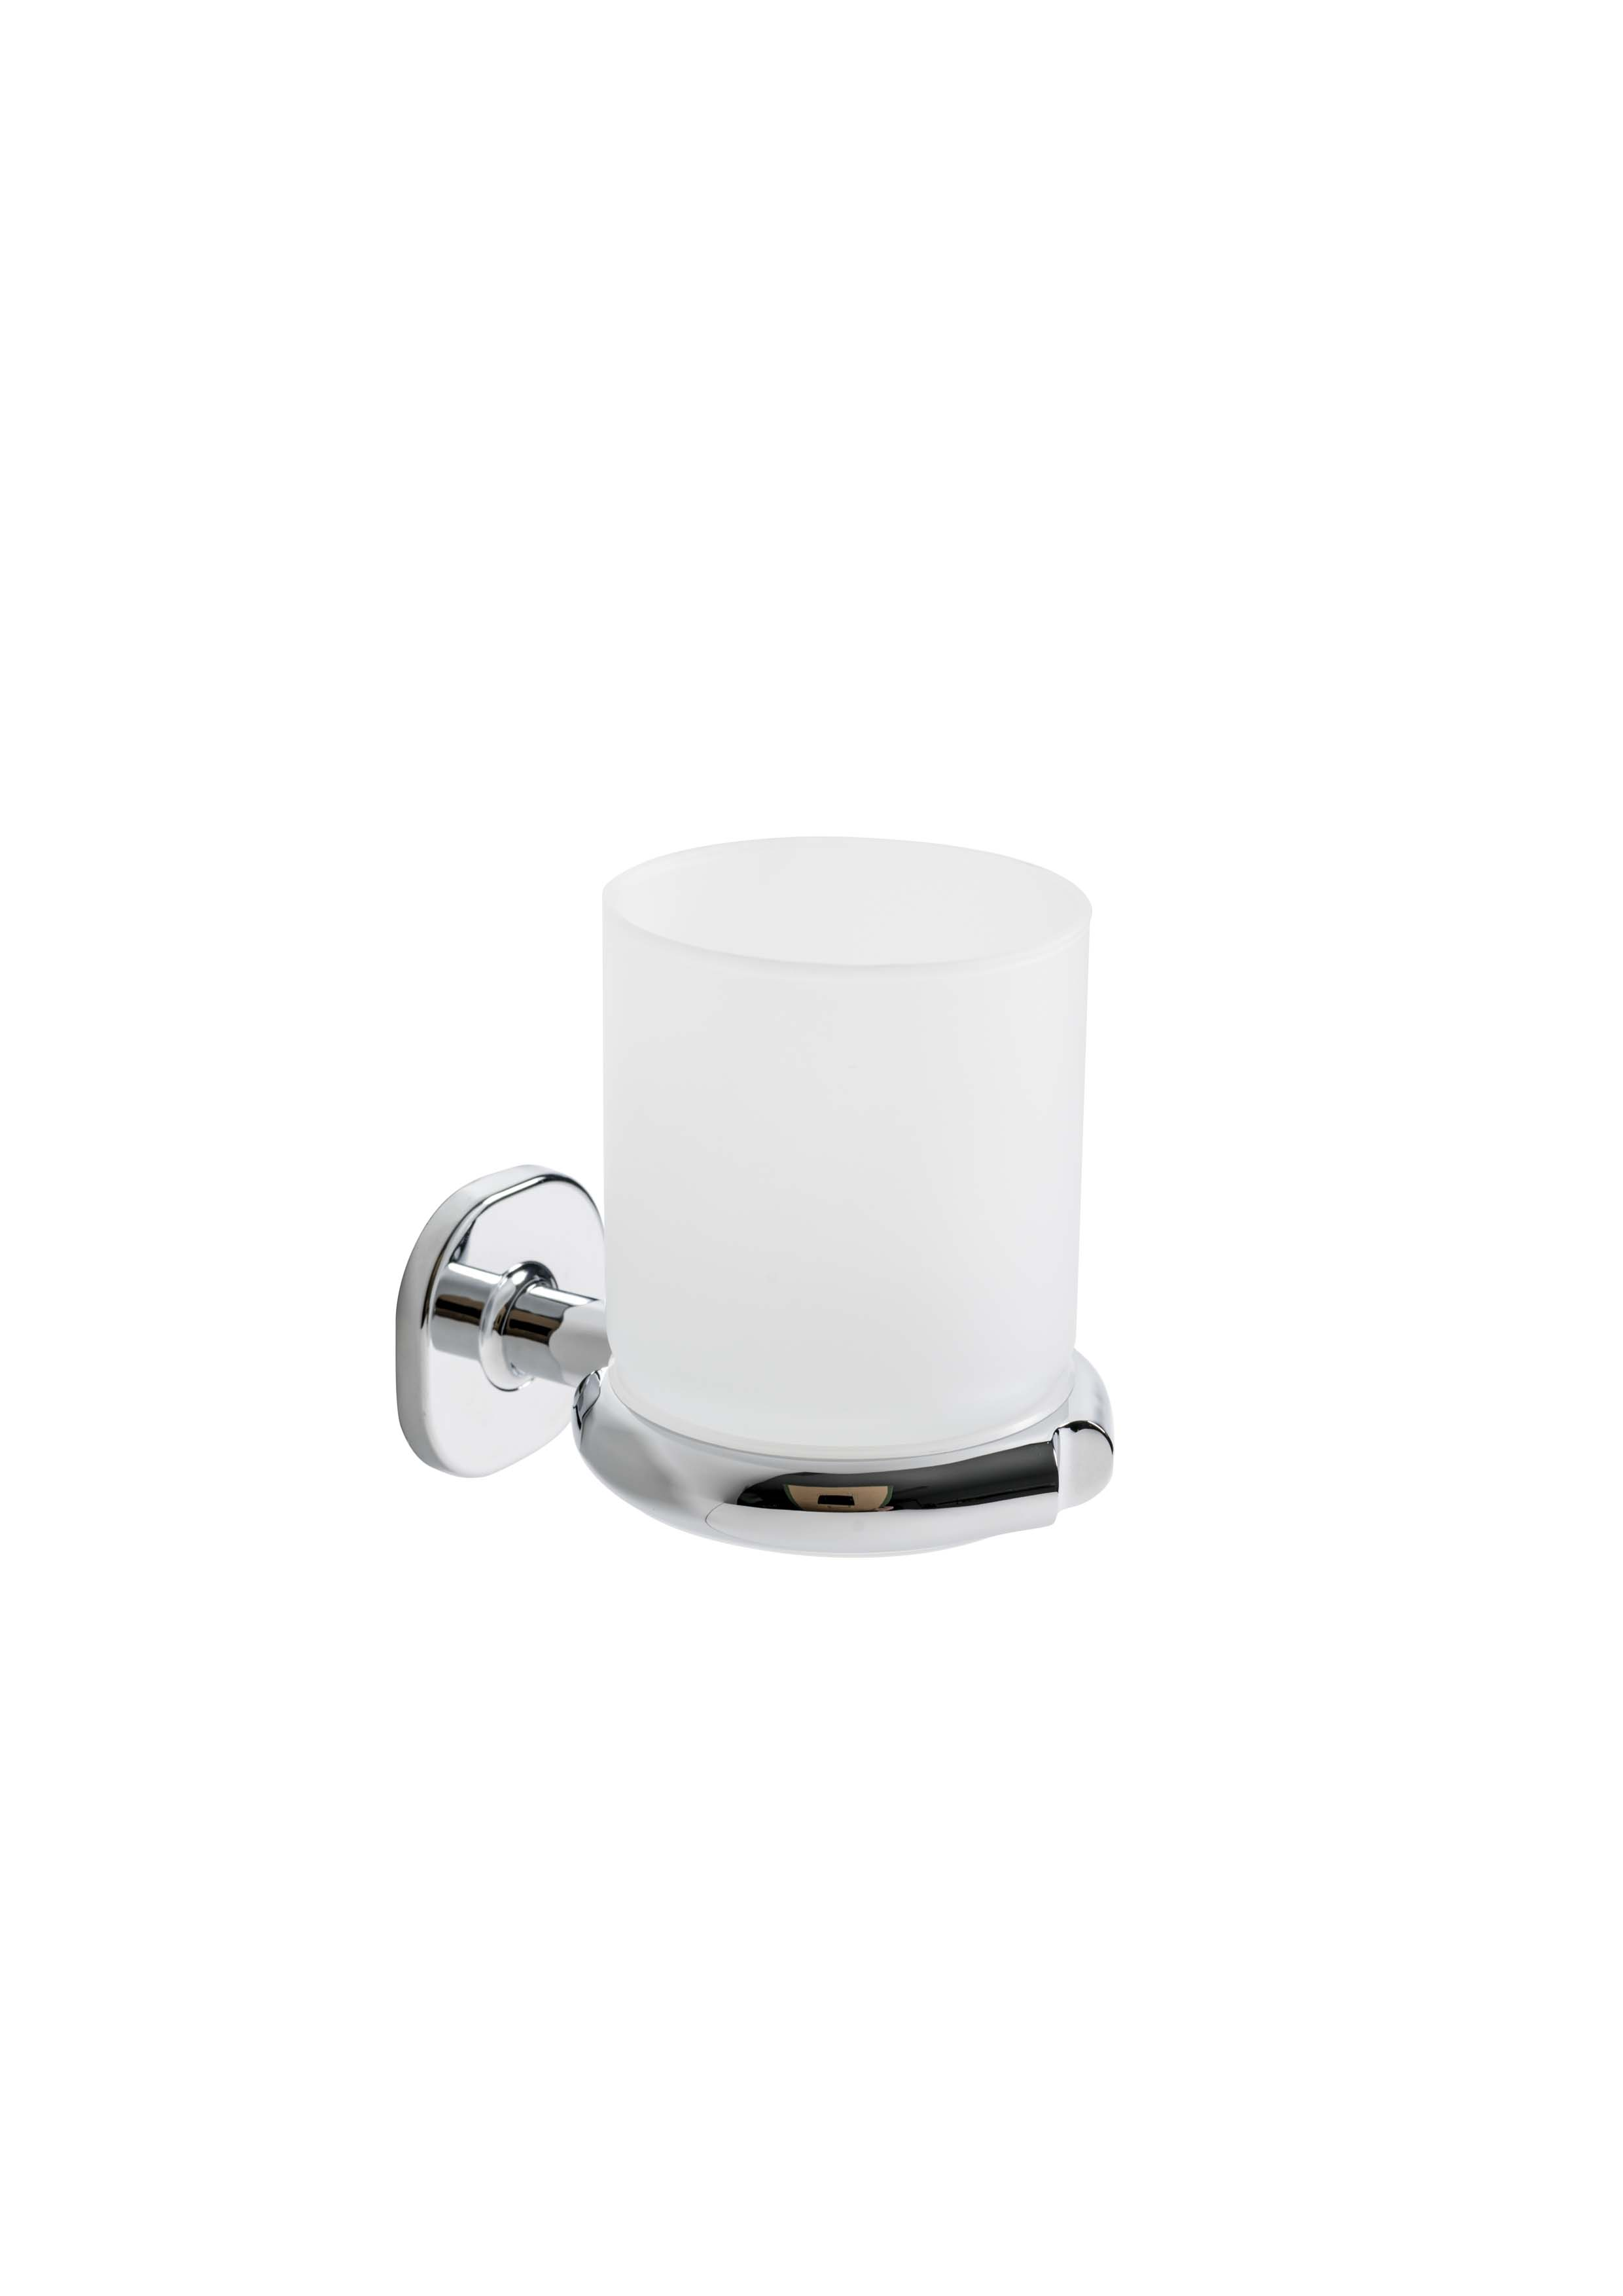 Ellepi Wall mount tumbler holder with Satin glass